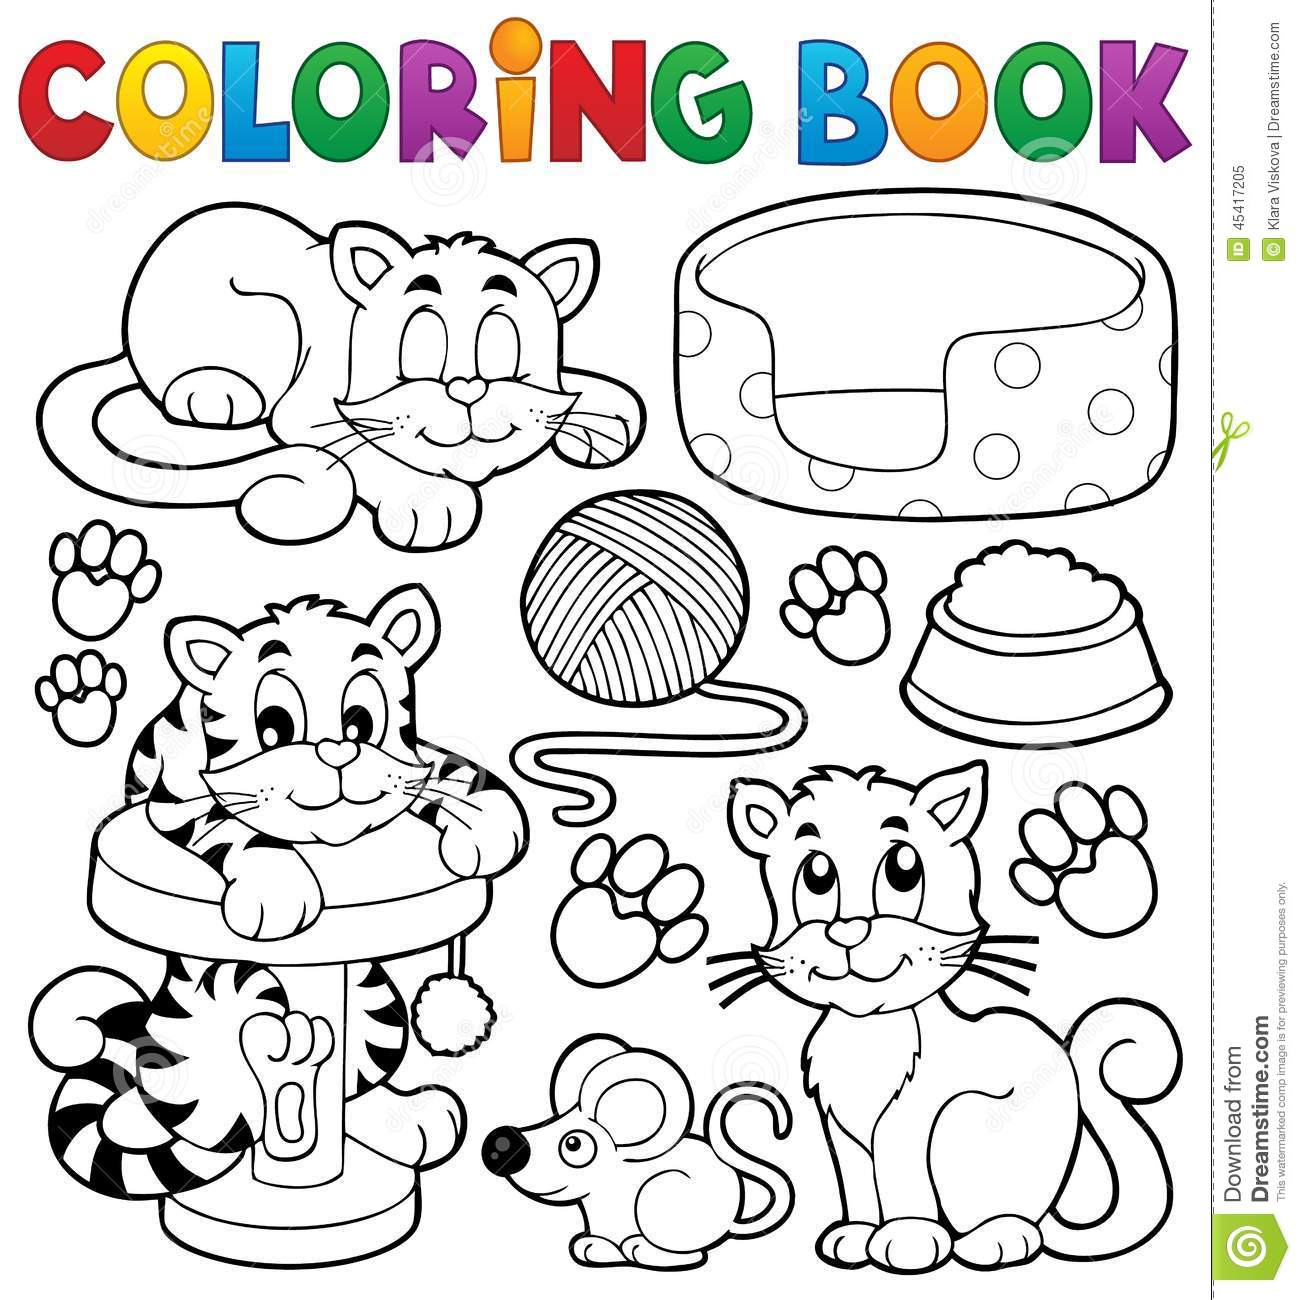 Royalty Free Vector Download Coloring Book Cat